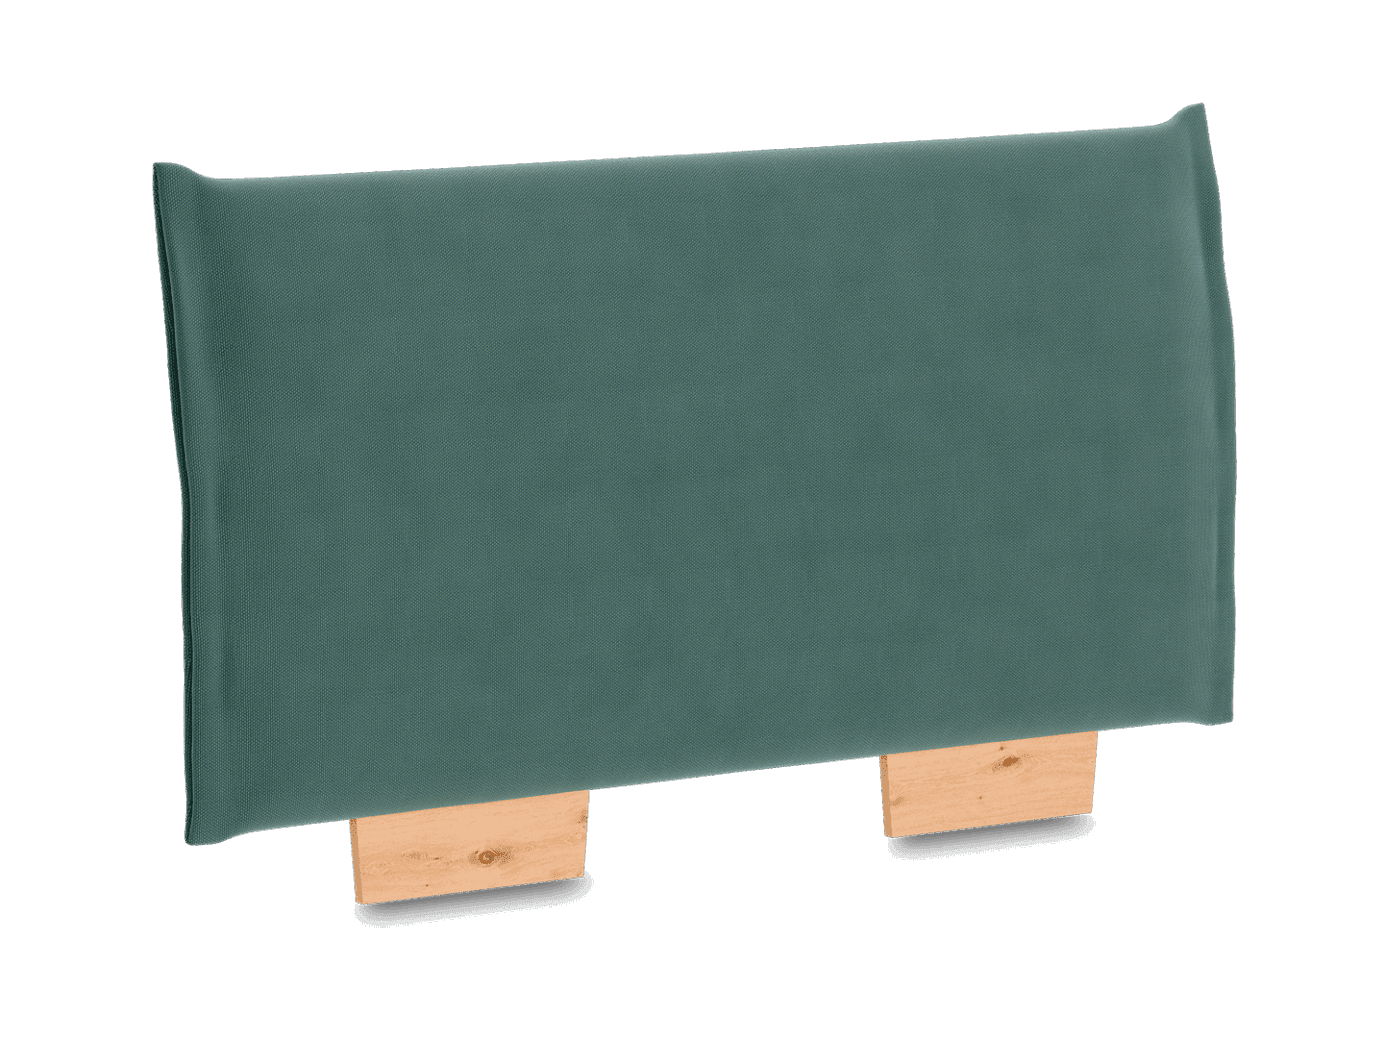 BICO Boxspringbettt Headboard Simplon Stitch 1440x1080